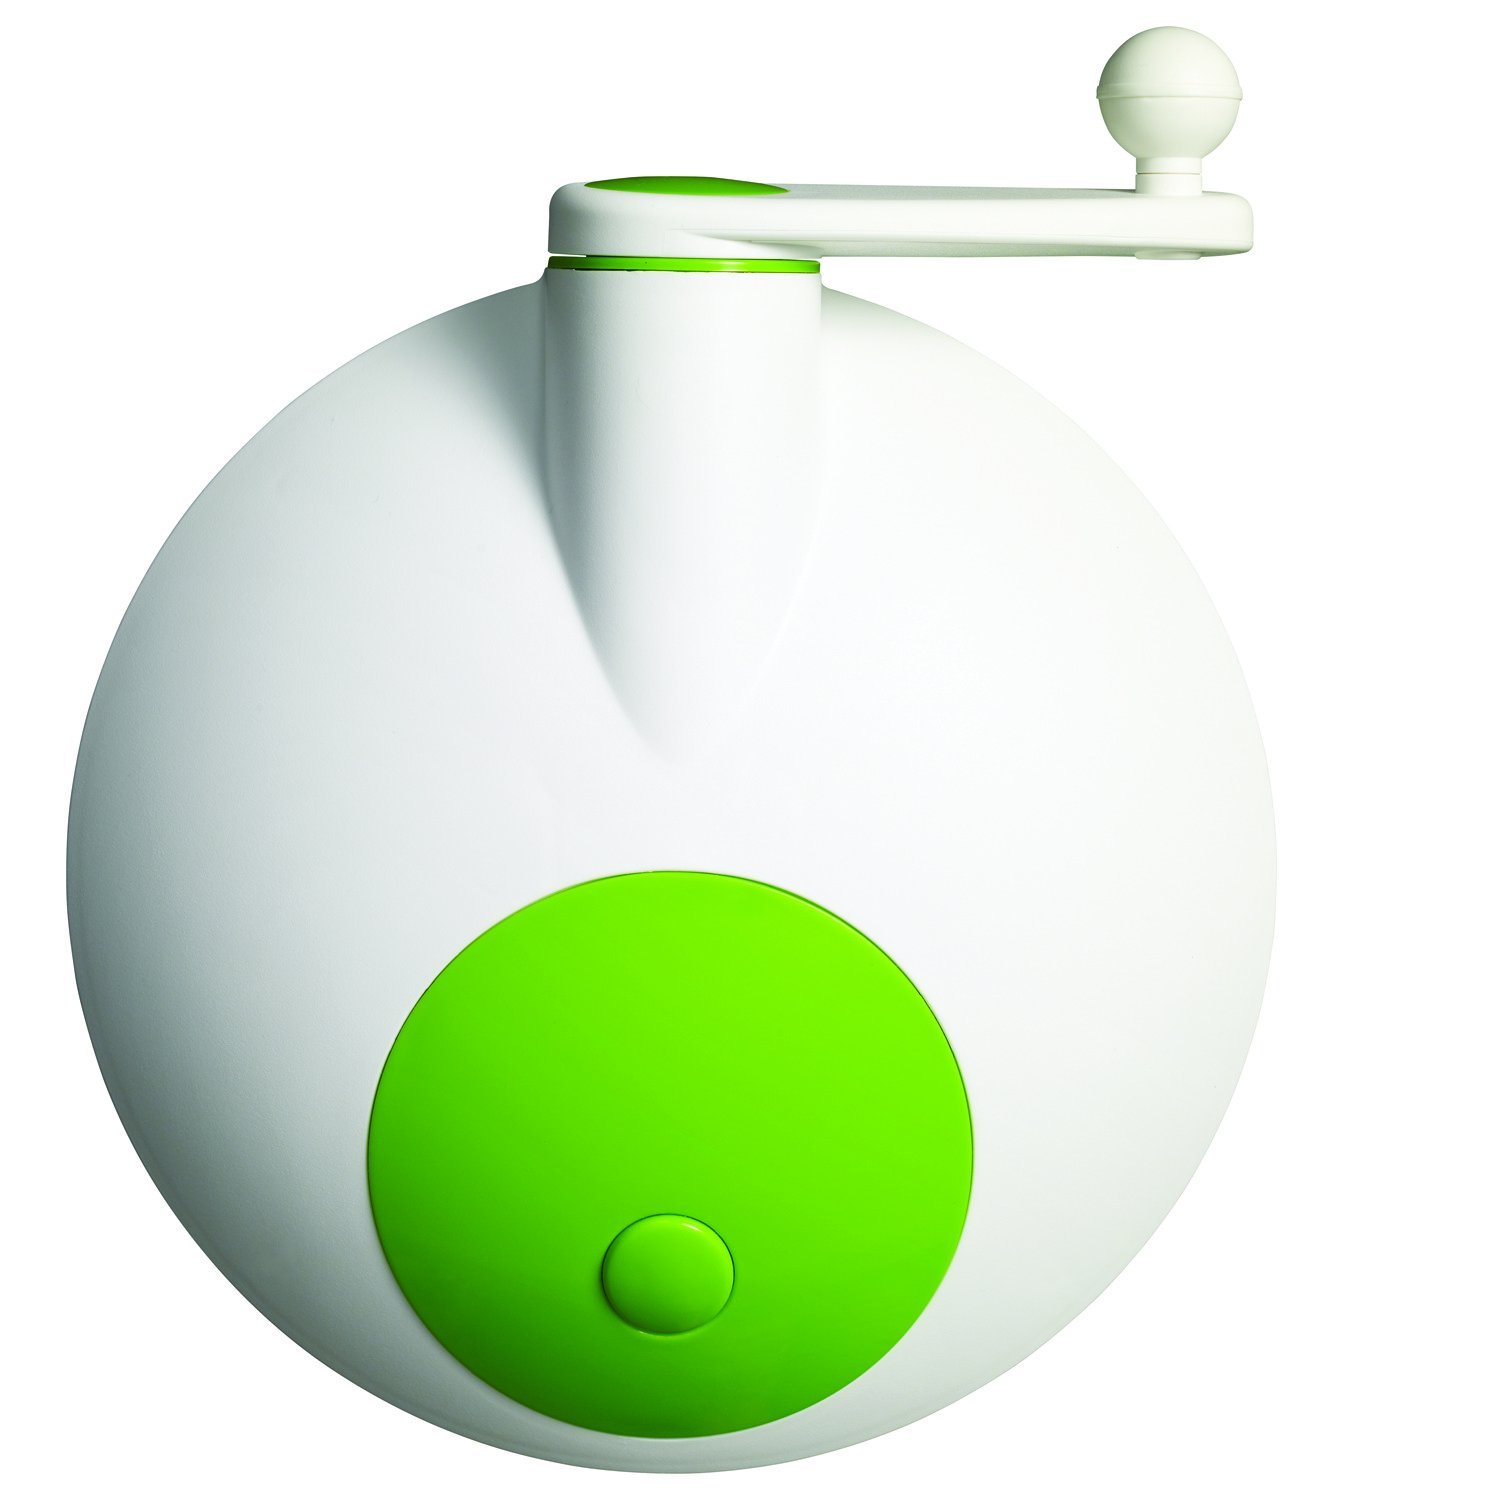 Salad Spinner with Ergonomic Handle